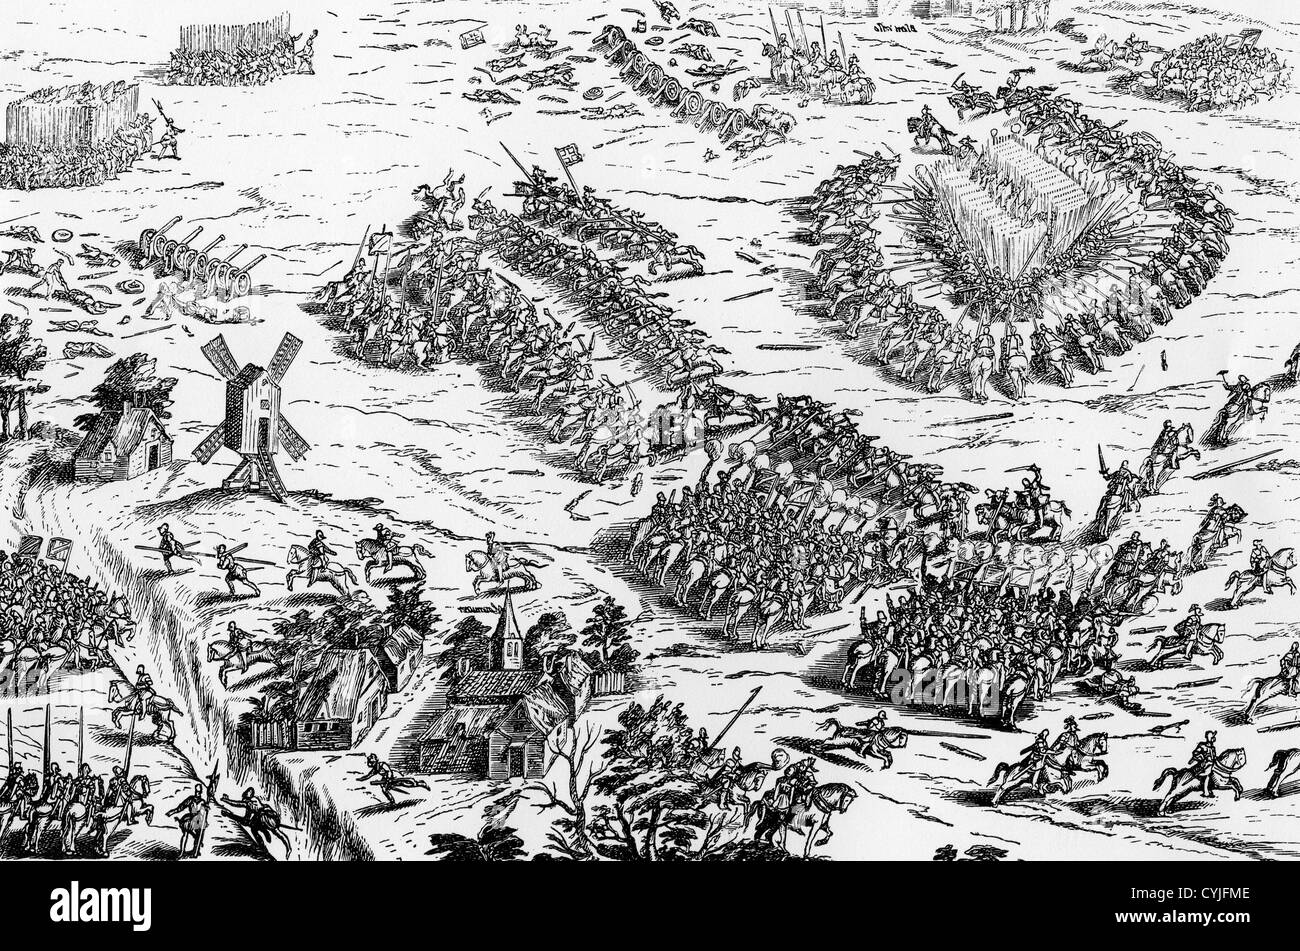 BATTLE OF DREUX  19 December 1562 when Catholic leader Francois de Guise defeated the Hugenots - Stock Image